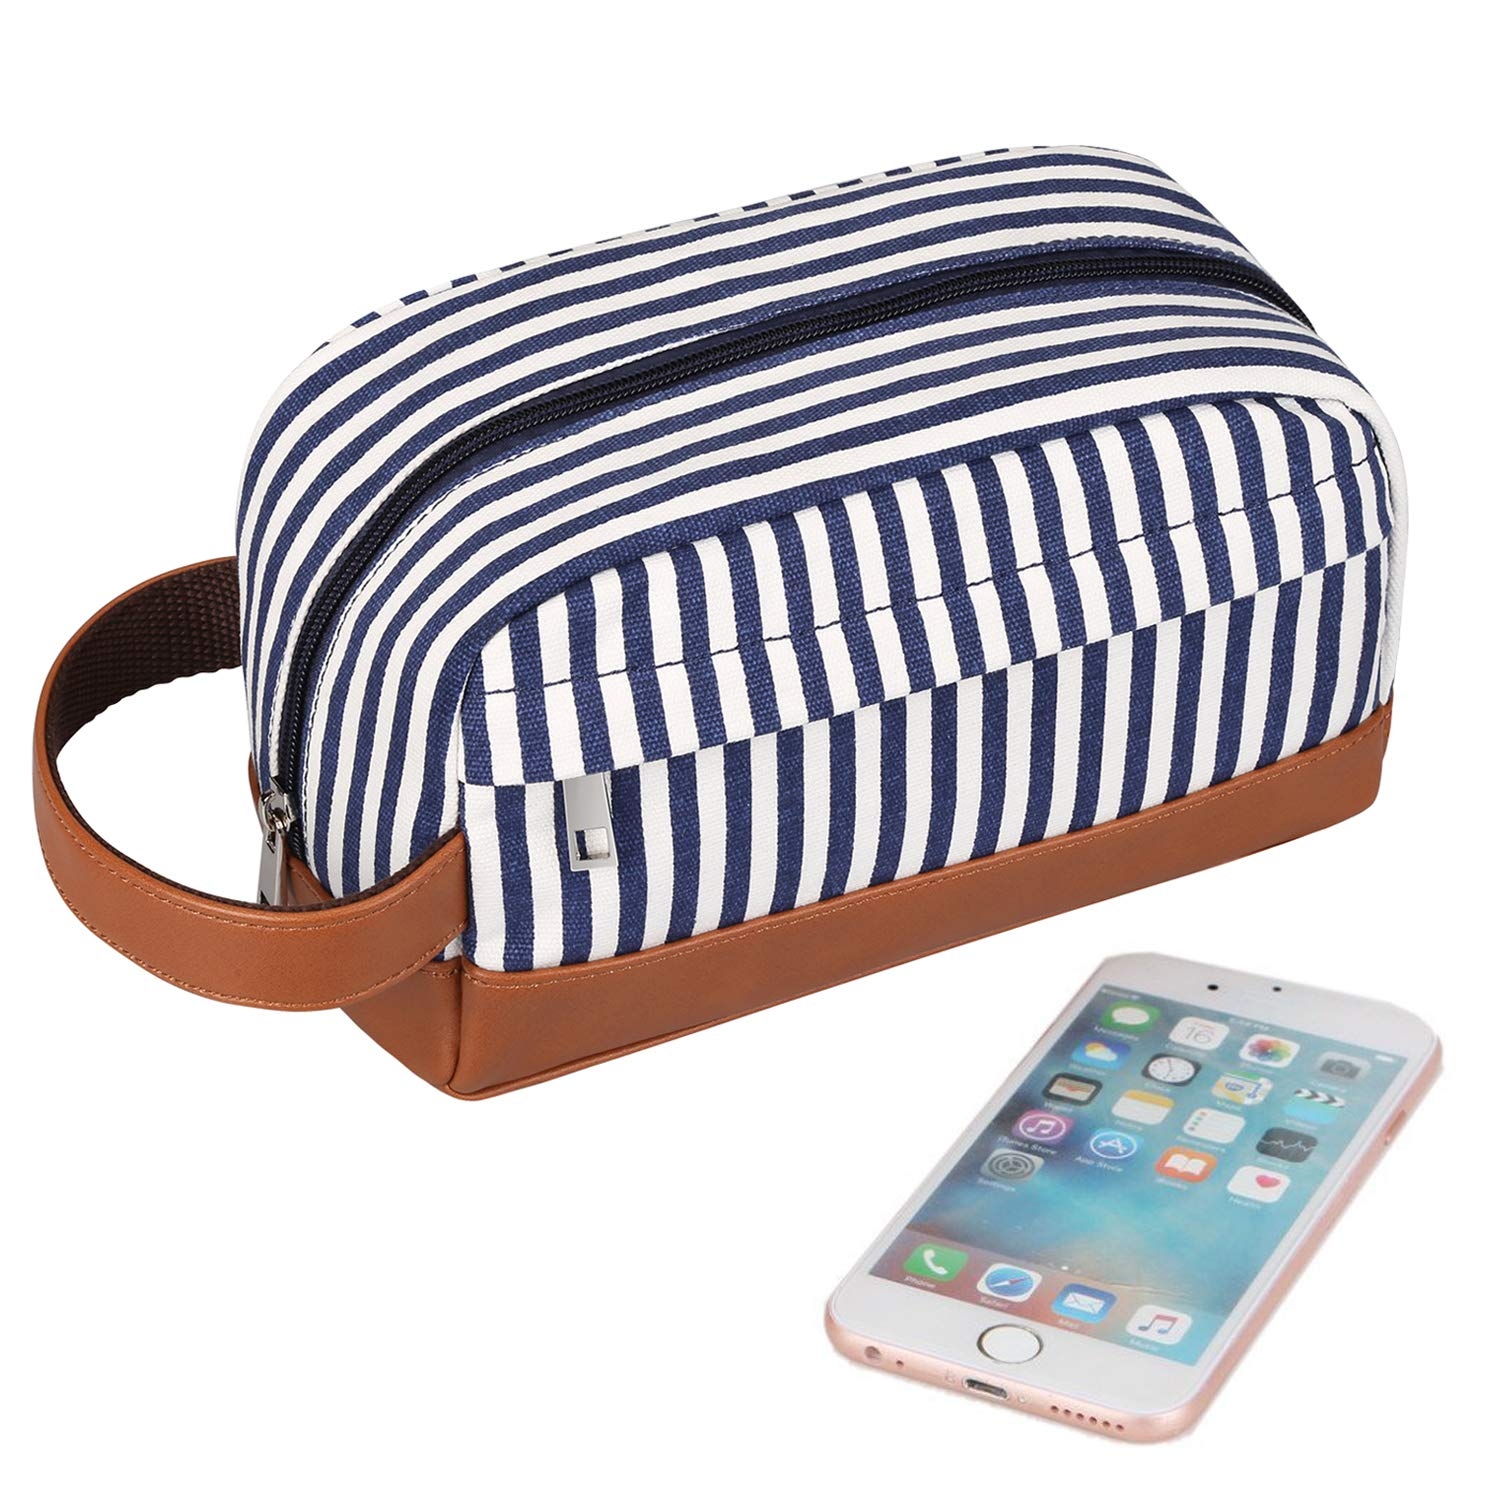 S-ZONE Canvas Toiletry Bag Shaving Dopp Case Vintage Leather Cosmetic Makeup Bag